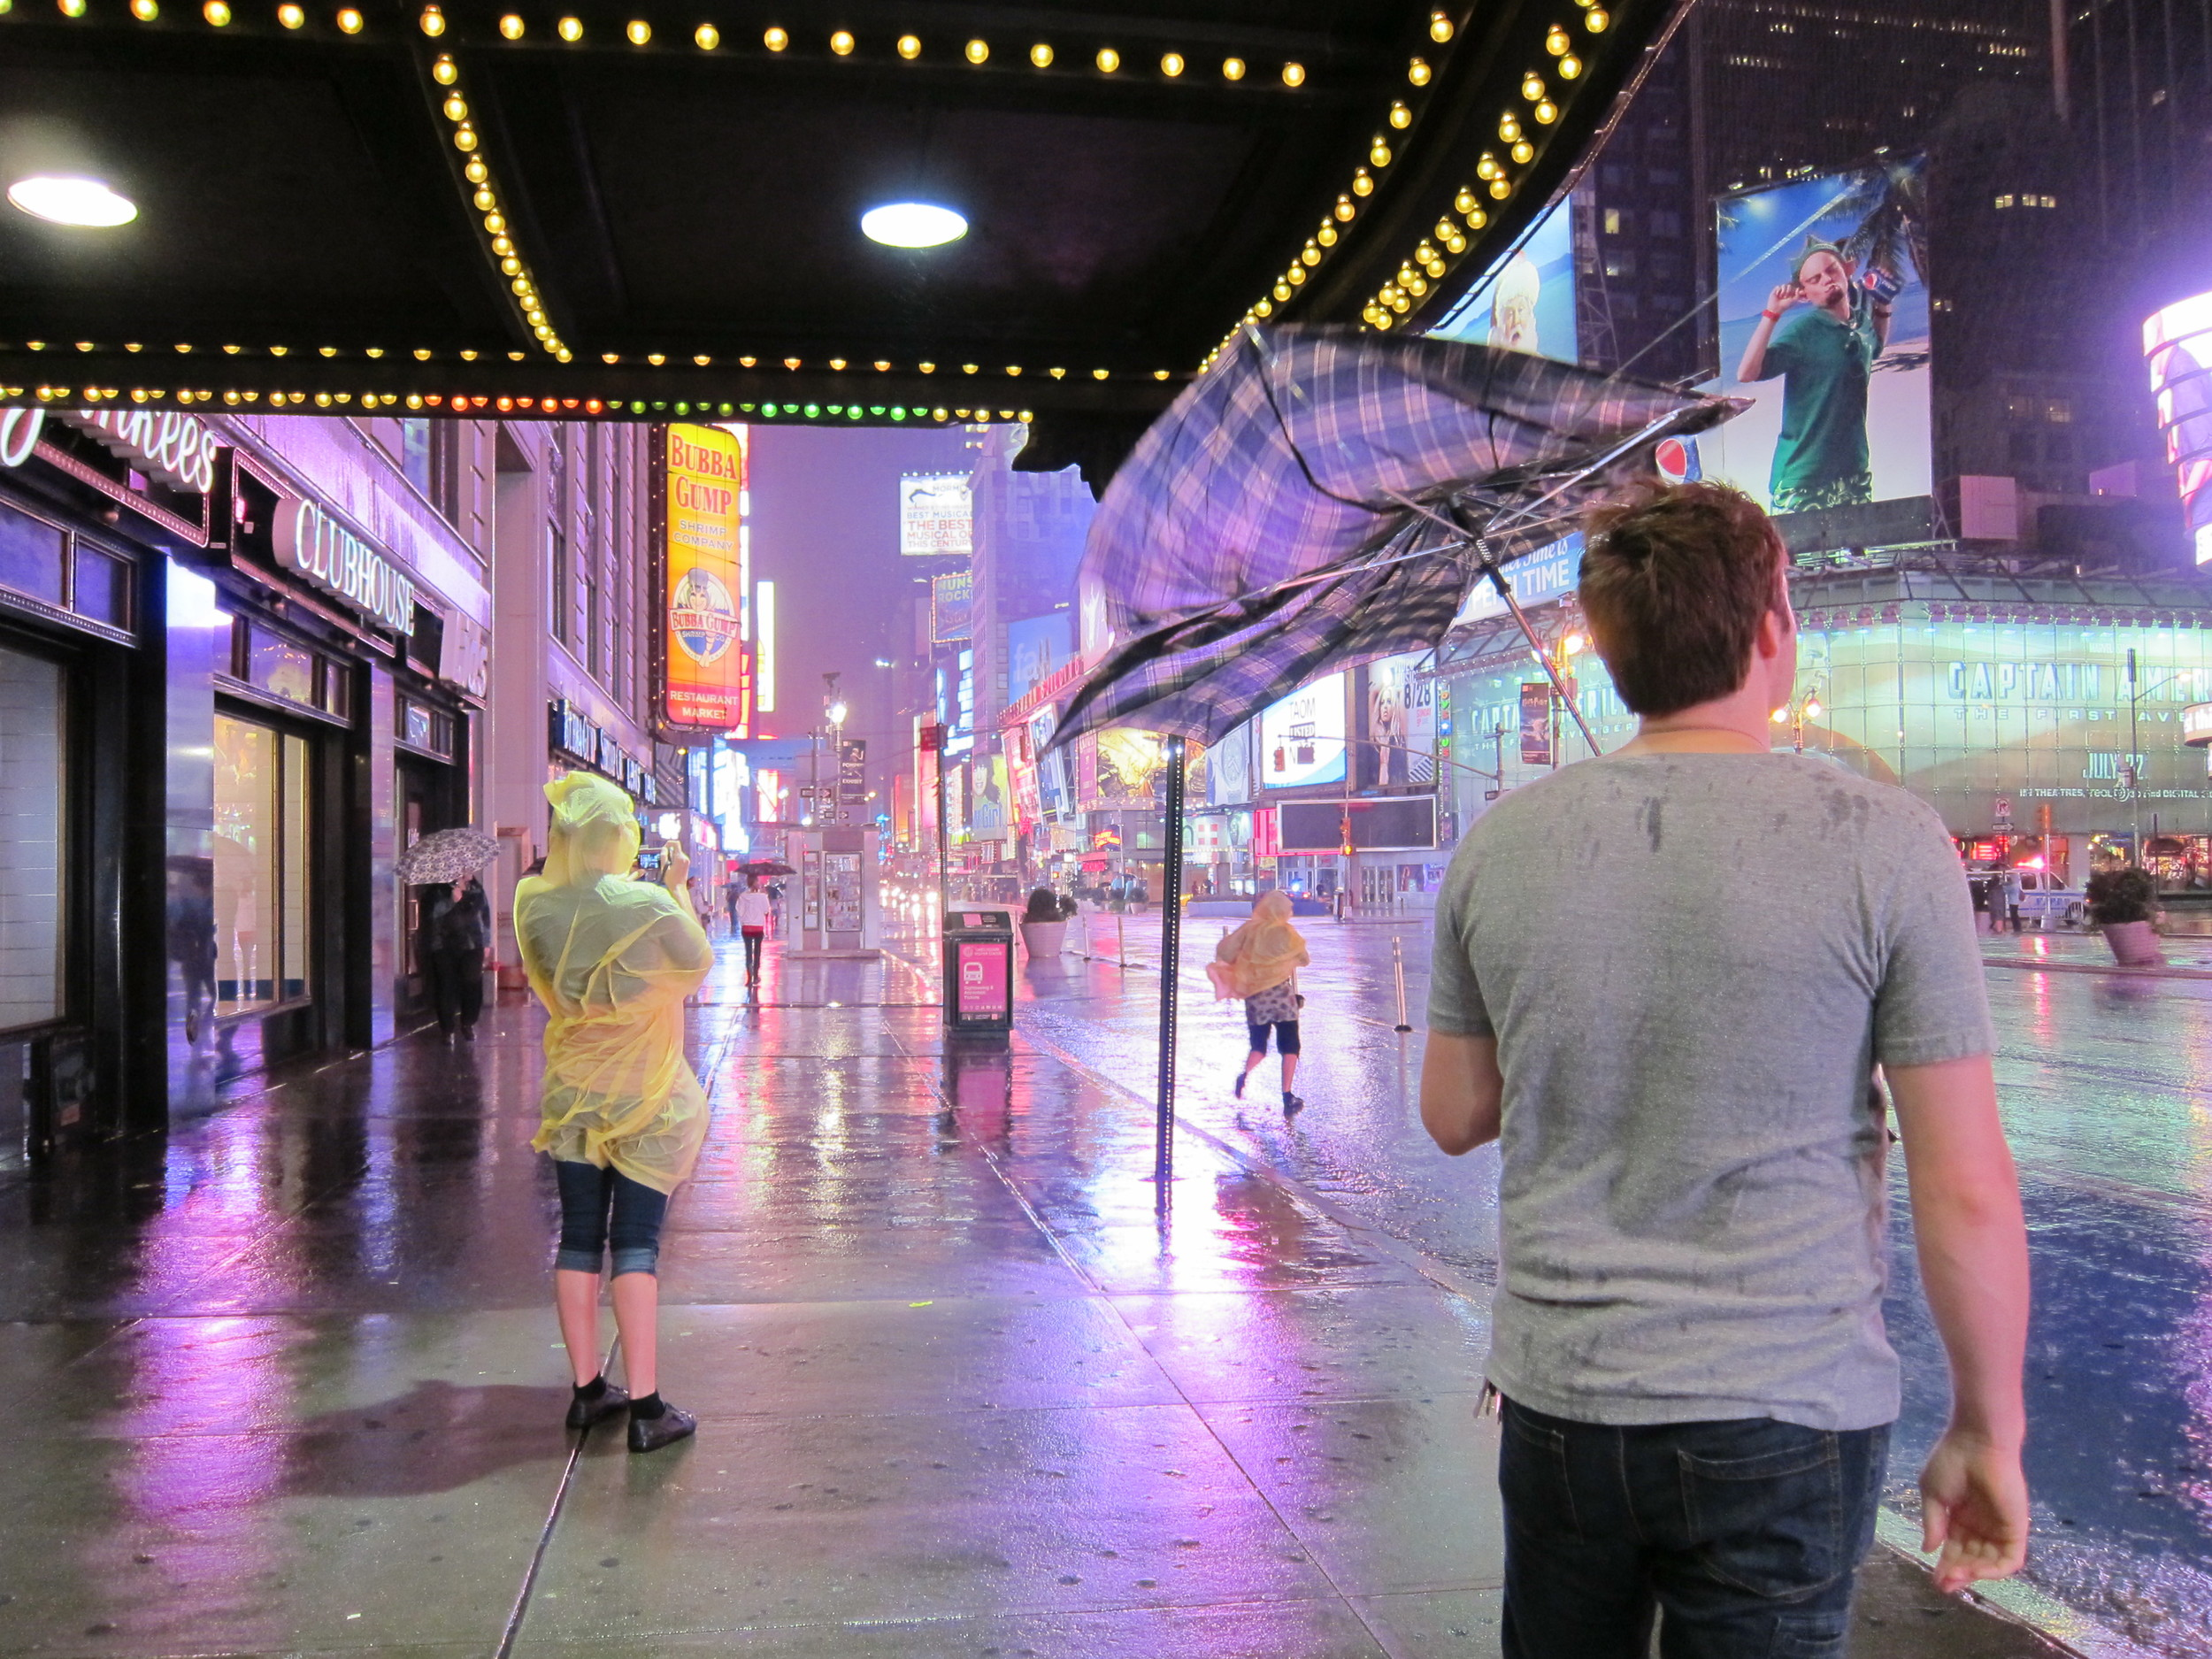 Zack, watching Hurricane Irene from Times Square